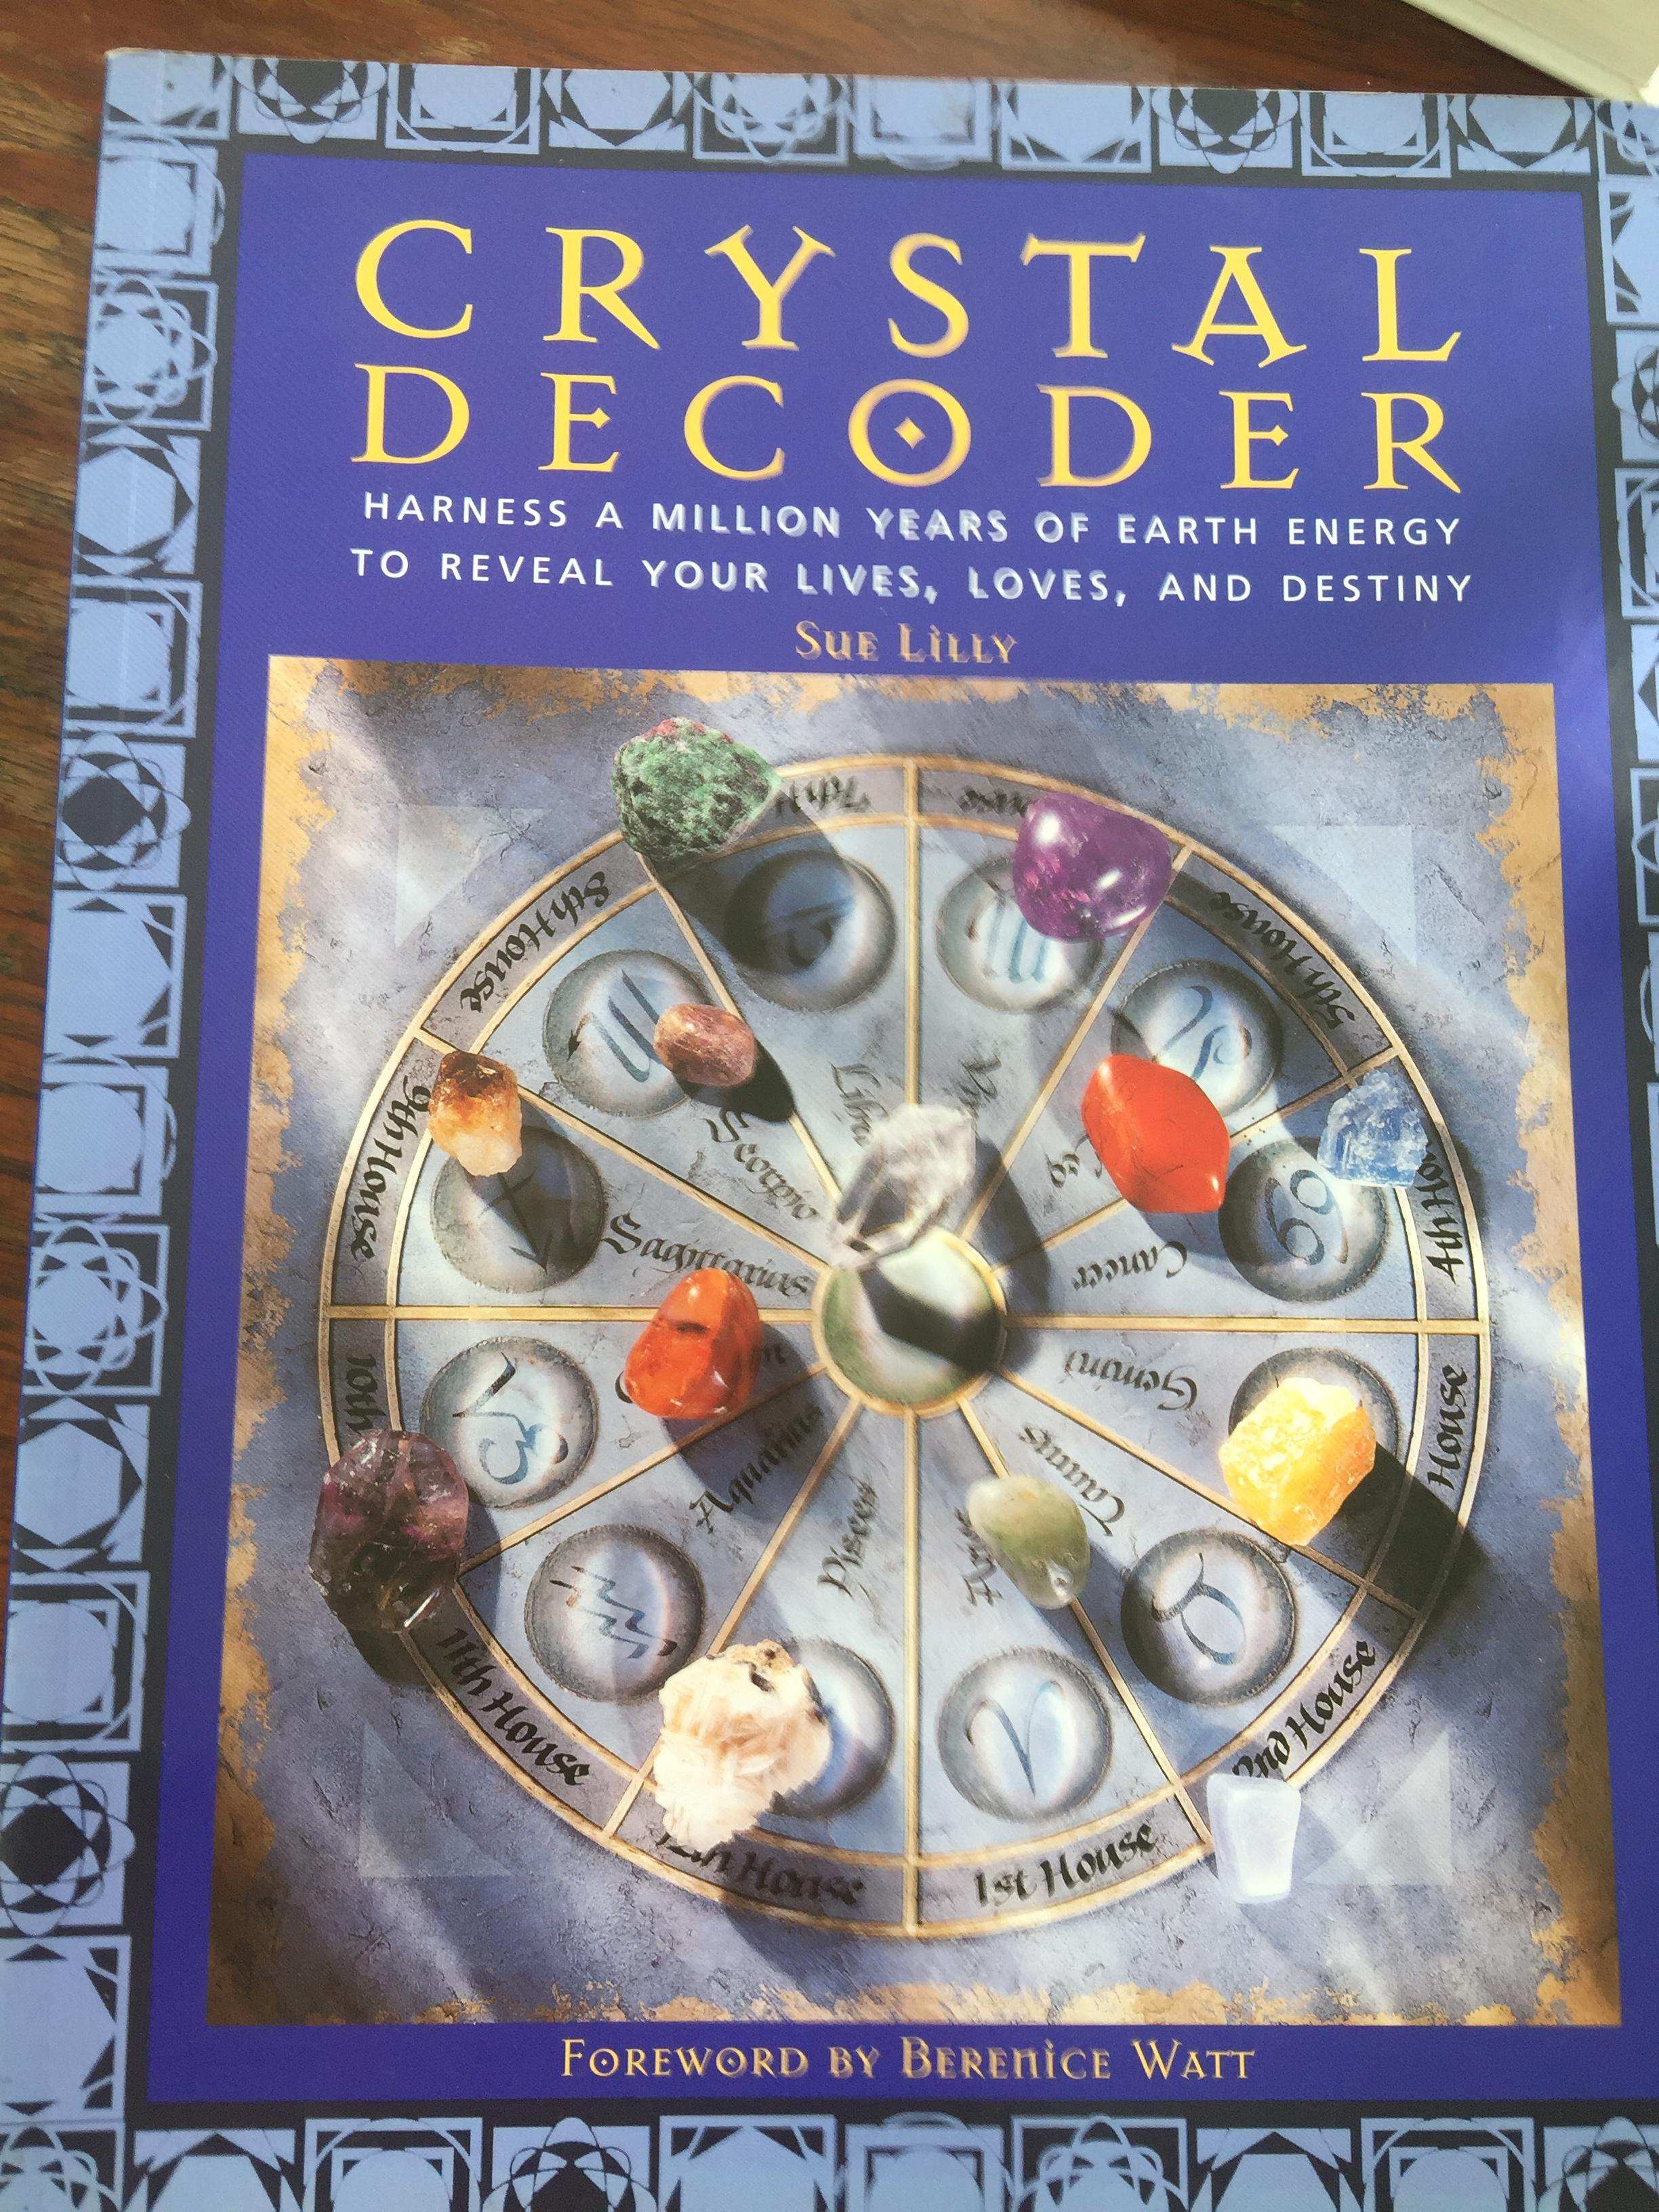 Crystal Decoder. harness a million years of earth energy to reveal your lives loves and destiny. ผู้เขียน Sue Lilly